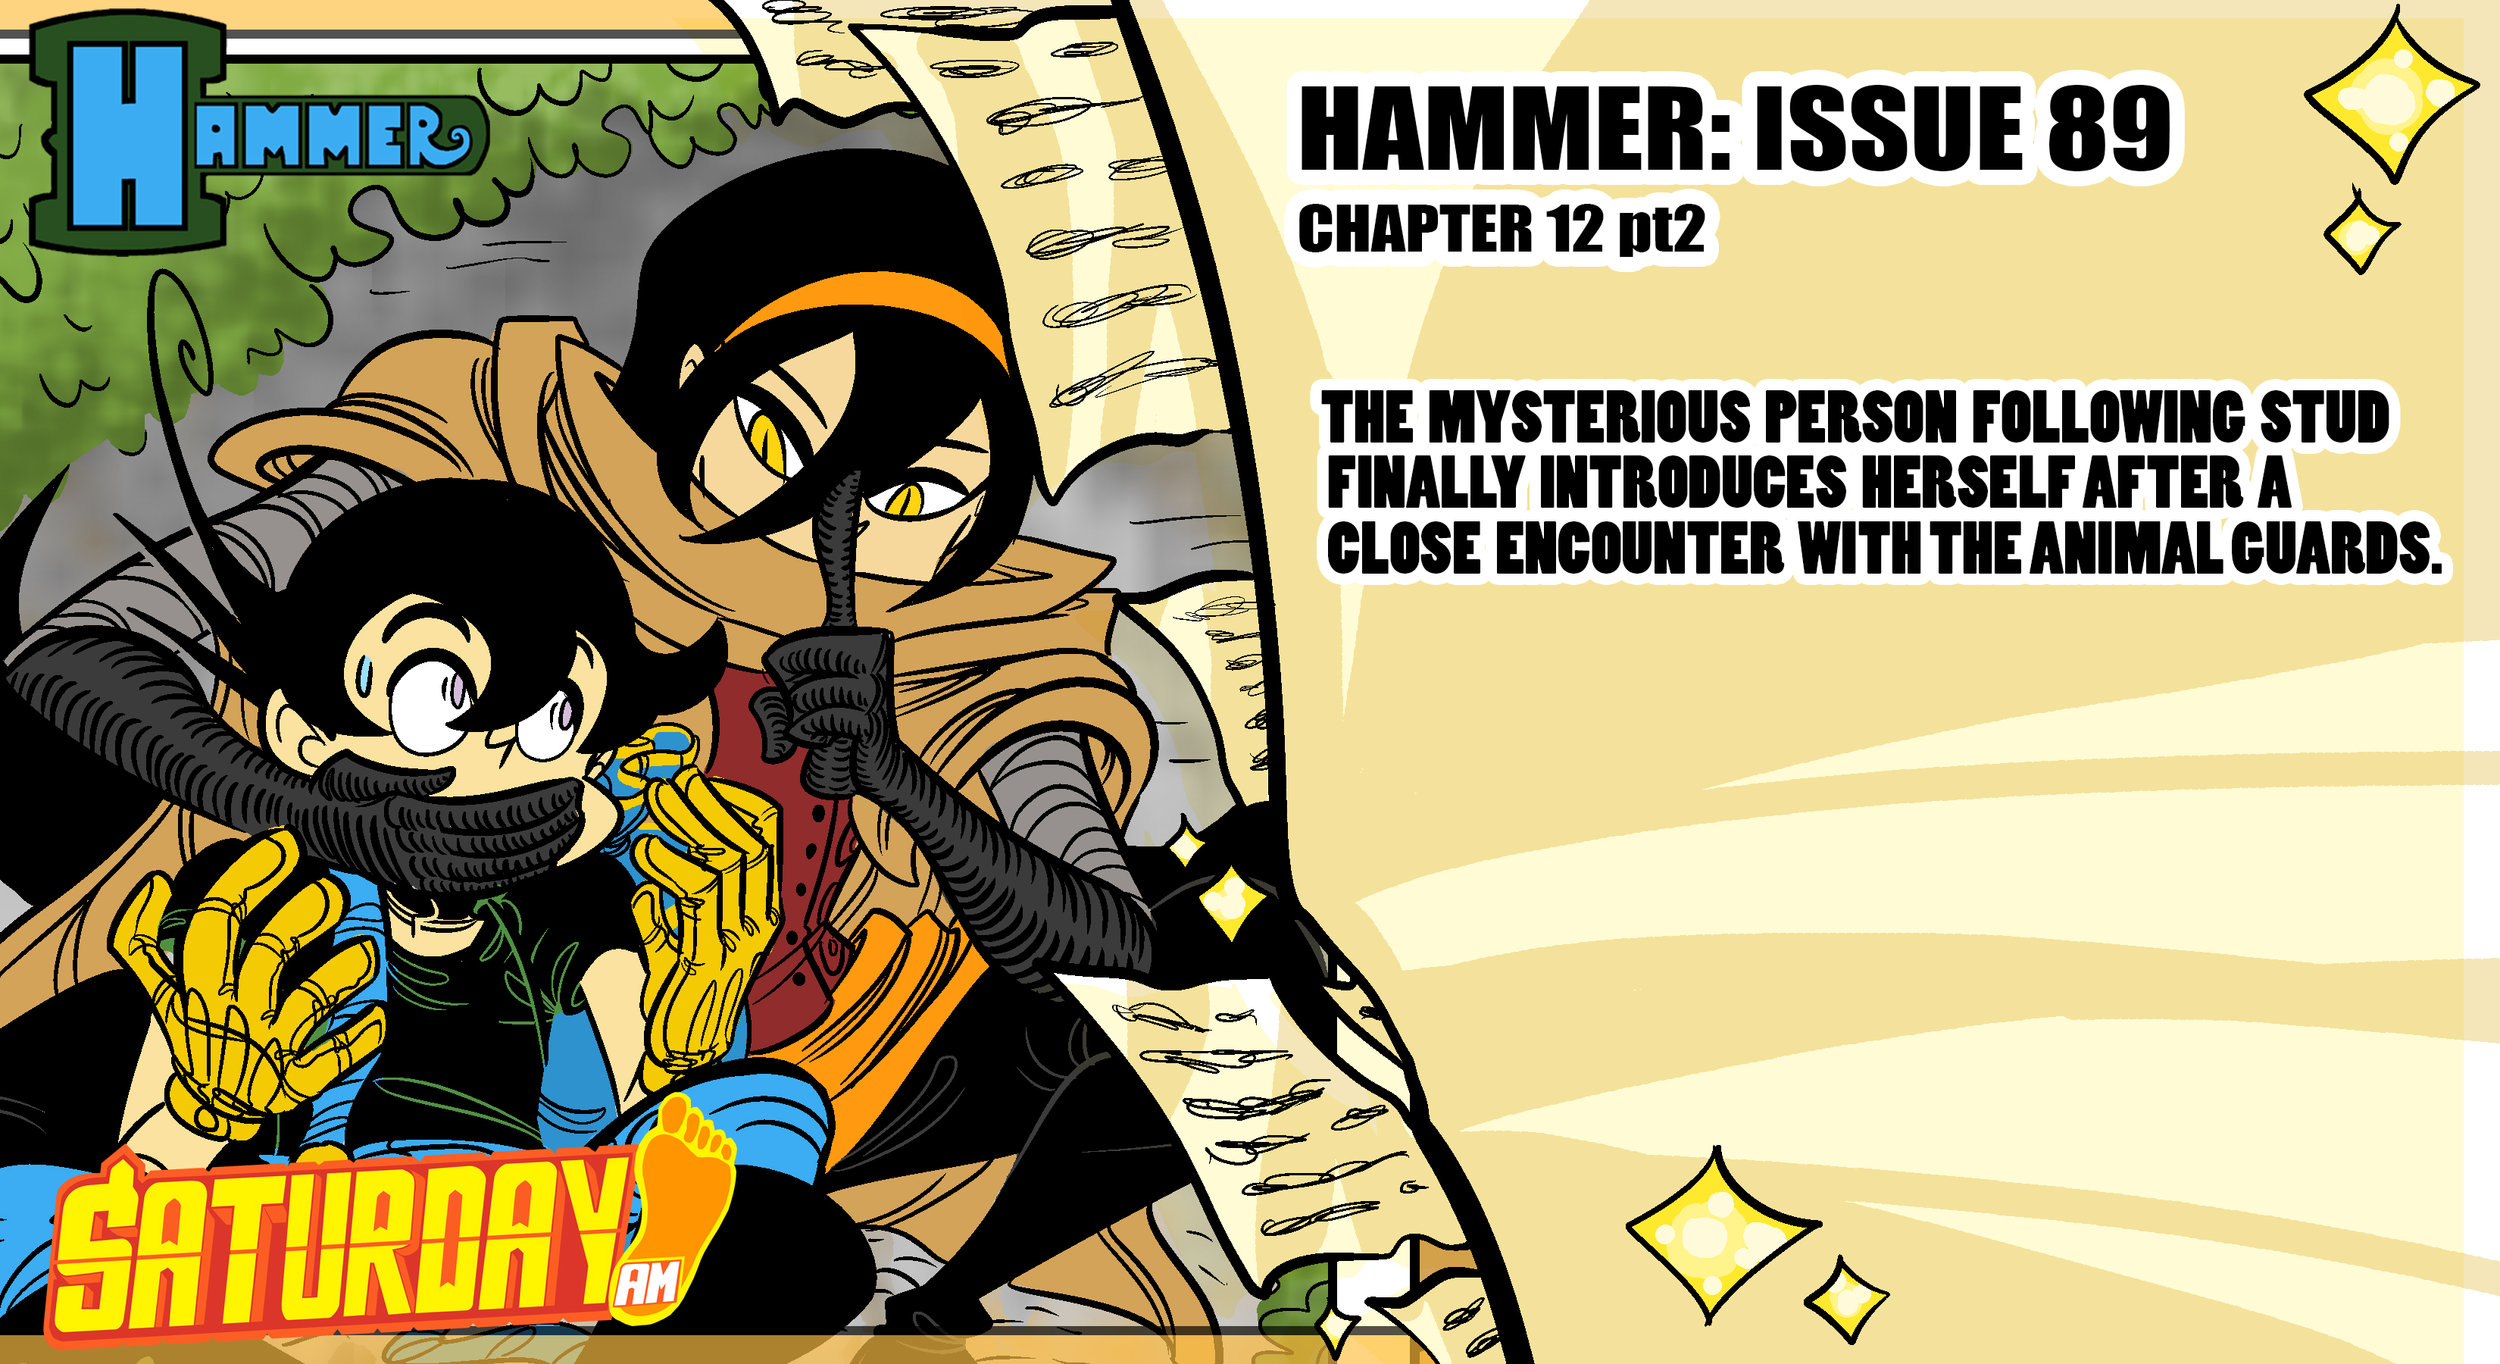 HAMMER WEBSITE_LATEST ISSUE GRAPHIC #89.jpg